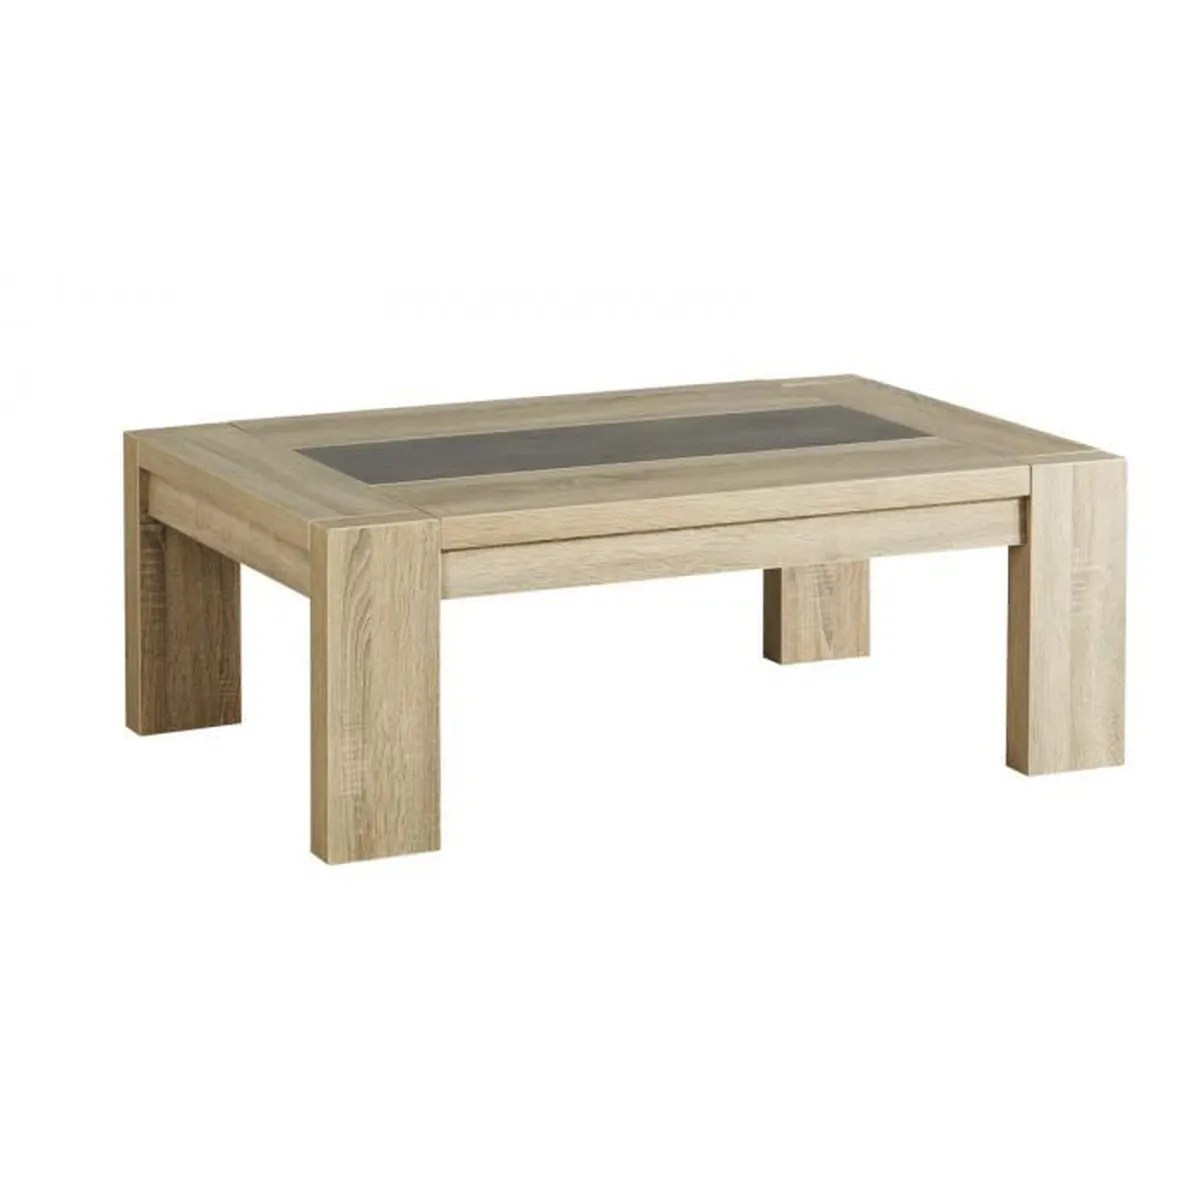 theo table basse rectangulaire